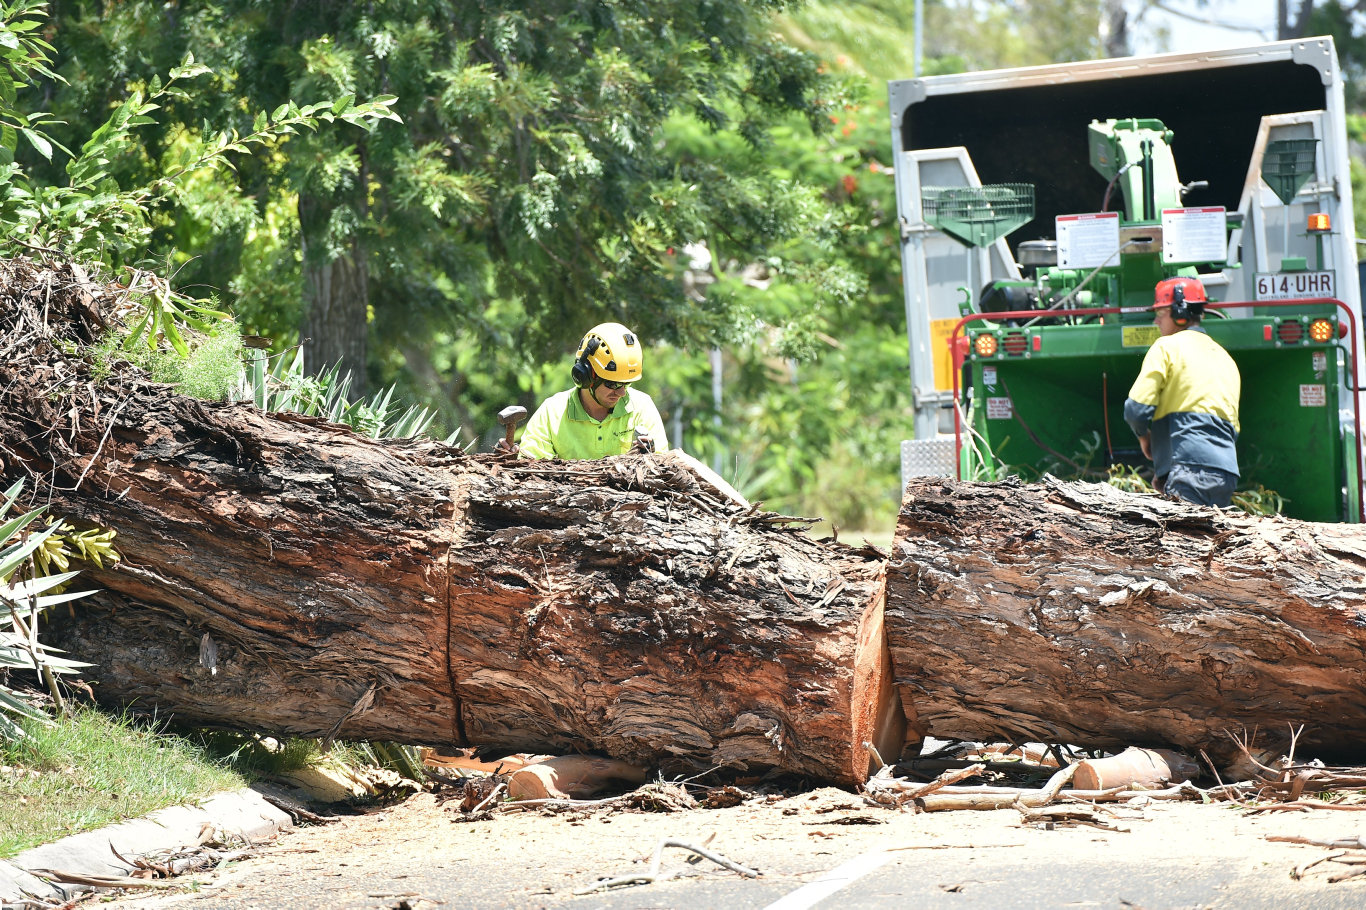 A tree that fell down at Mountain Creek could have killed someone, residents say.